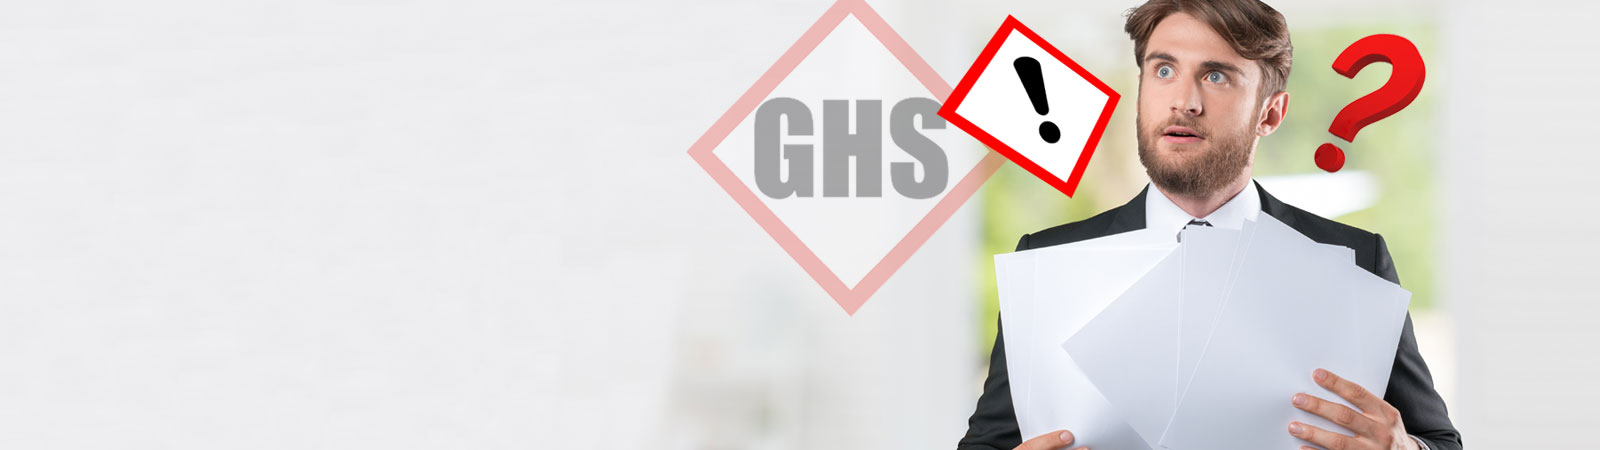 home_ghs_notext_1600x450_EN